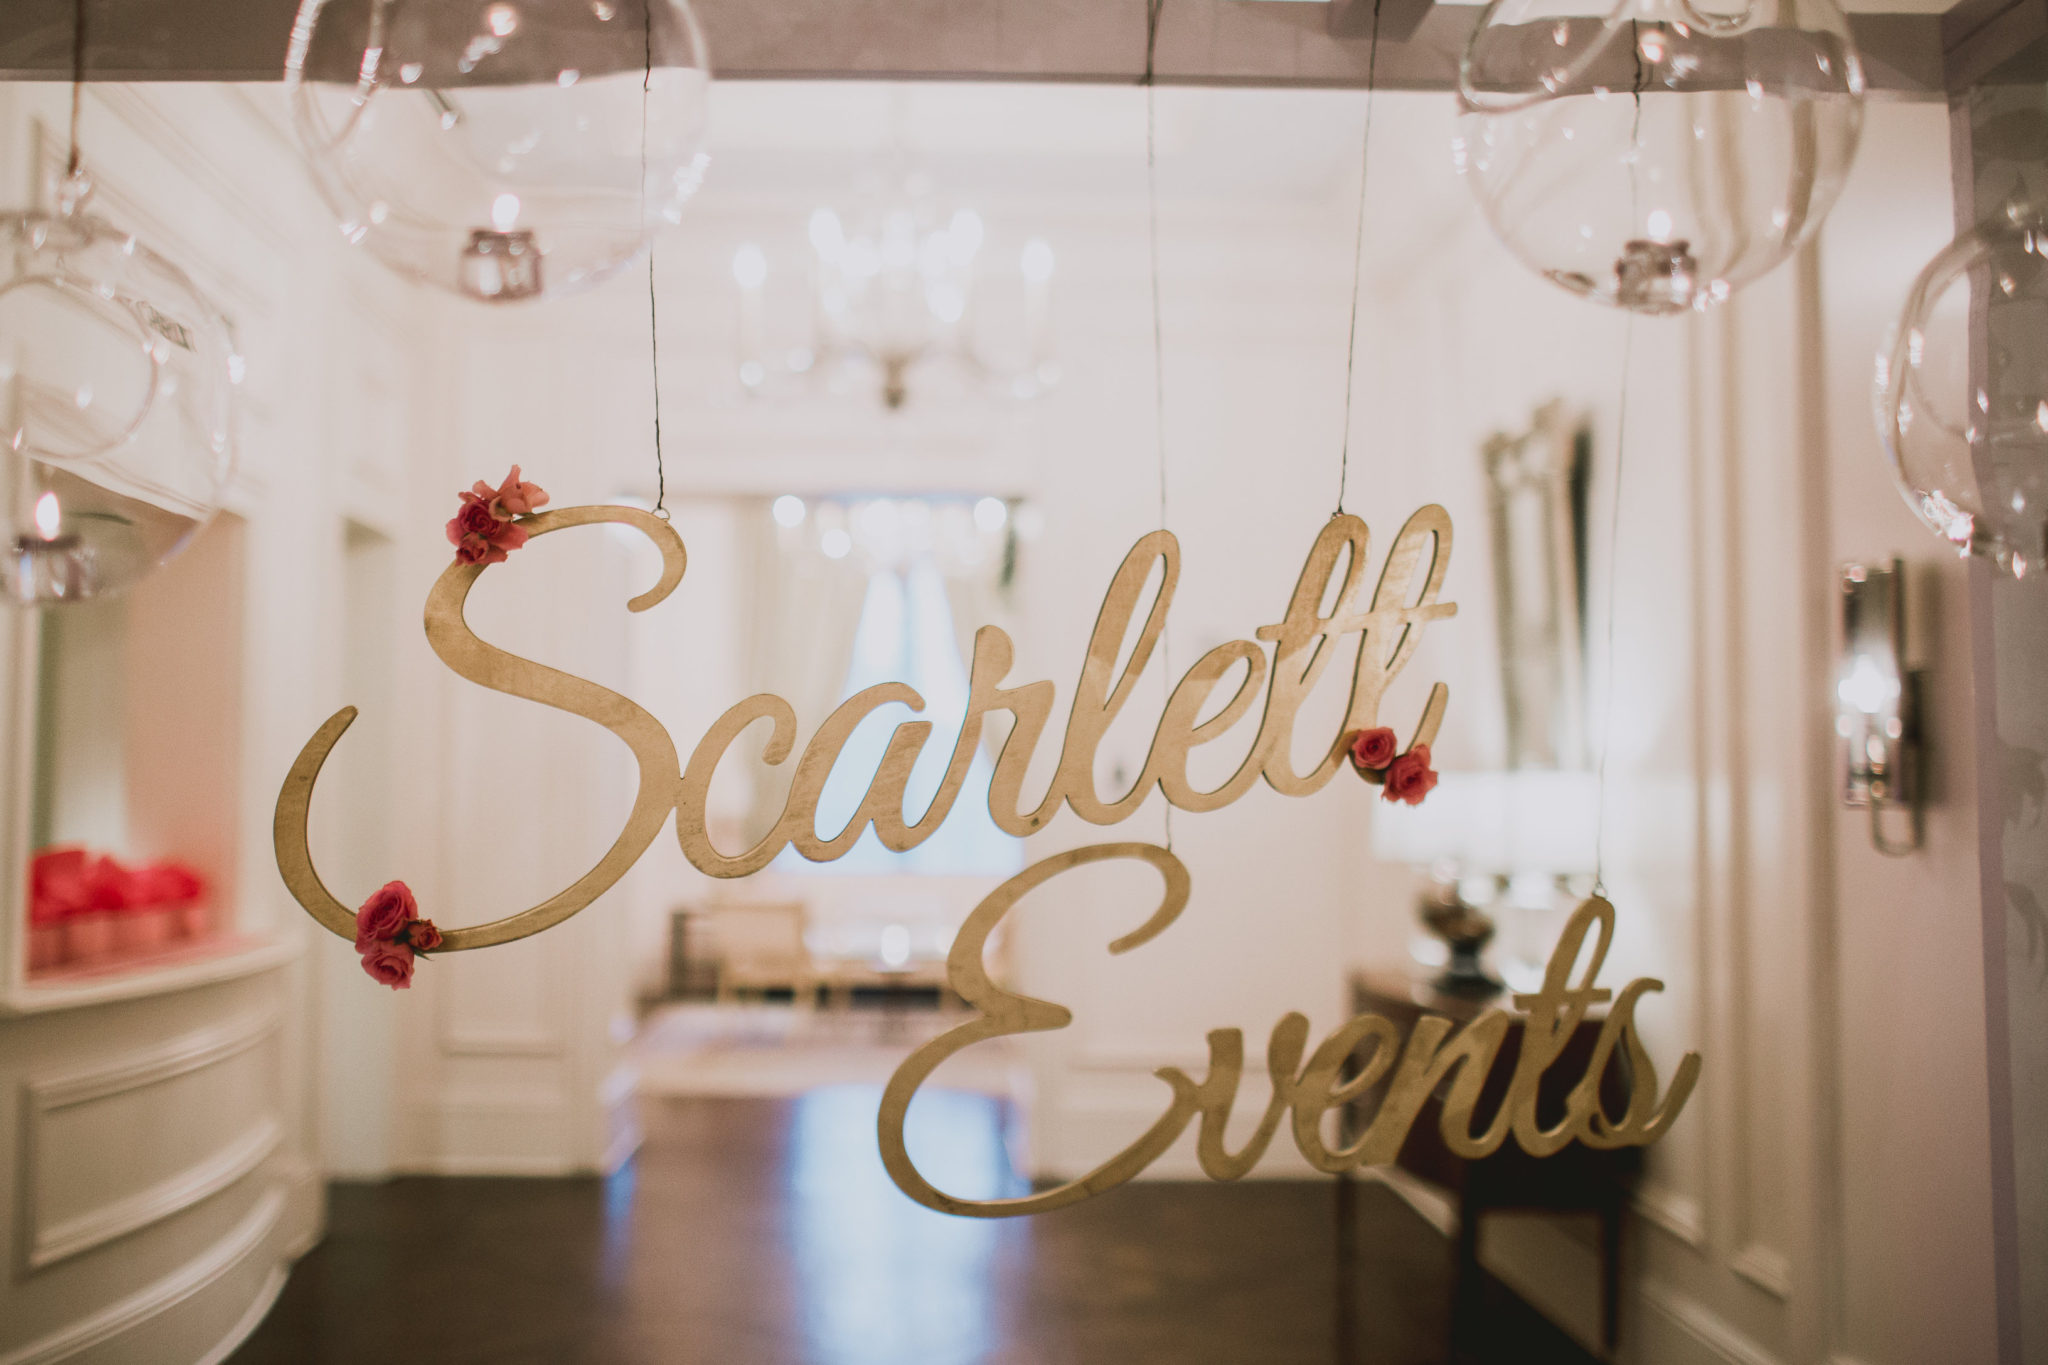 View More: http://kelleyraye.pass.us/scarlett-events-launch